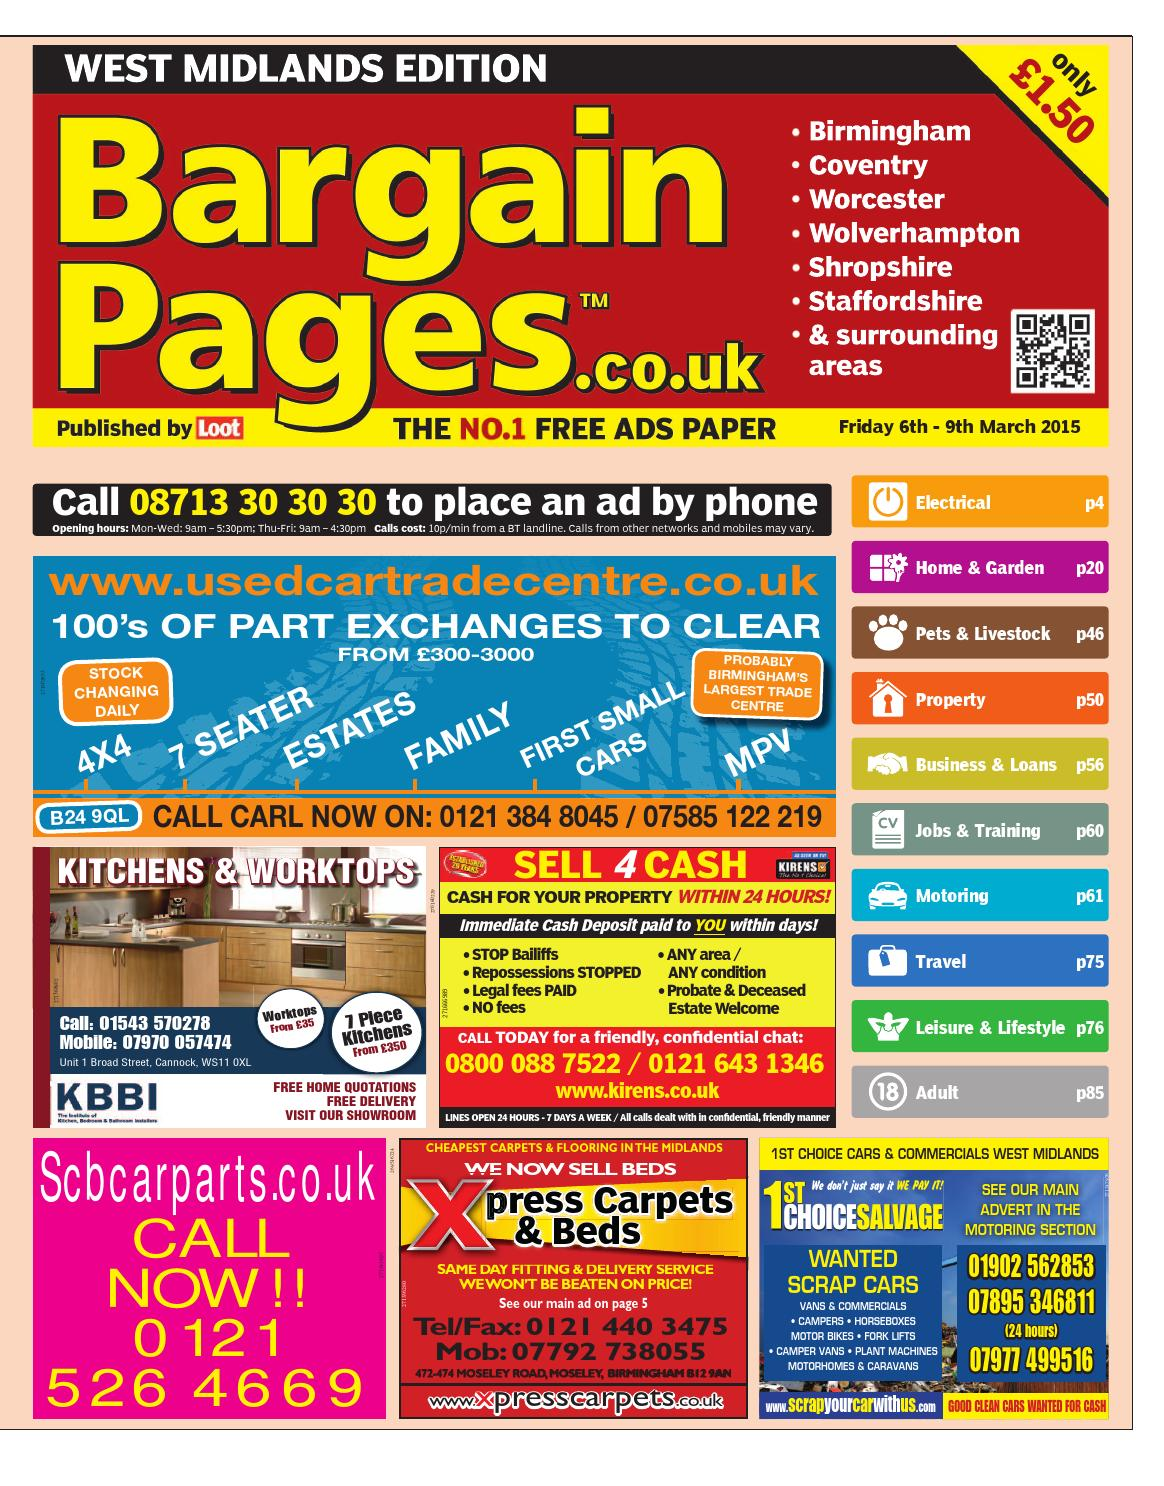 Bargain Pages West Midlands 6th March 2015 by Loot - issuu 140120ec3febc